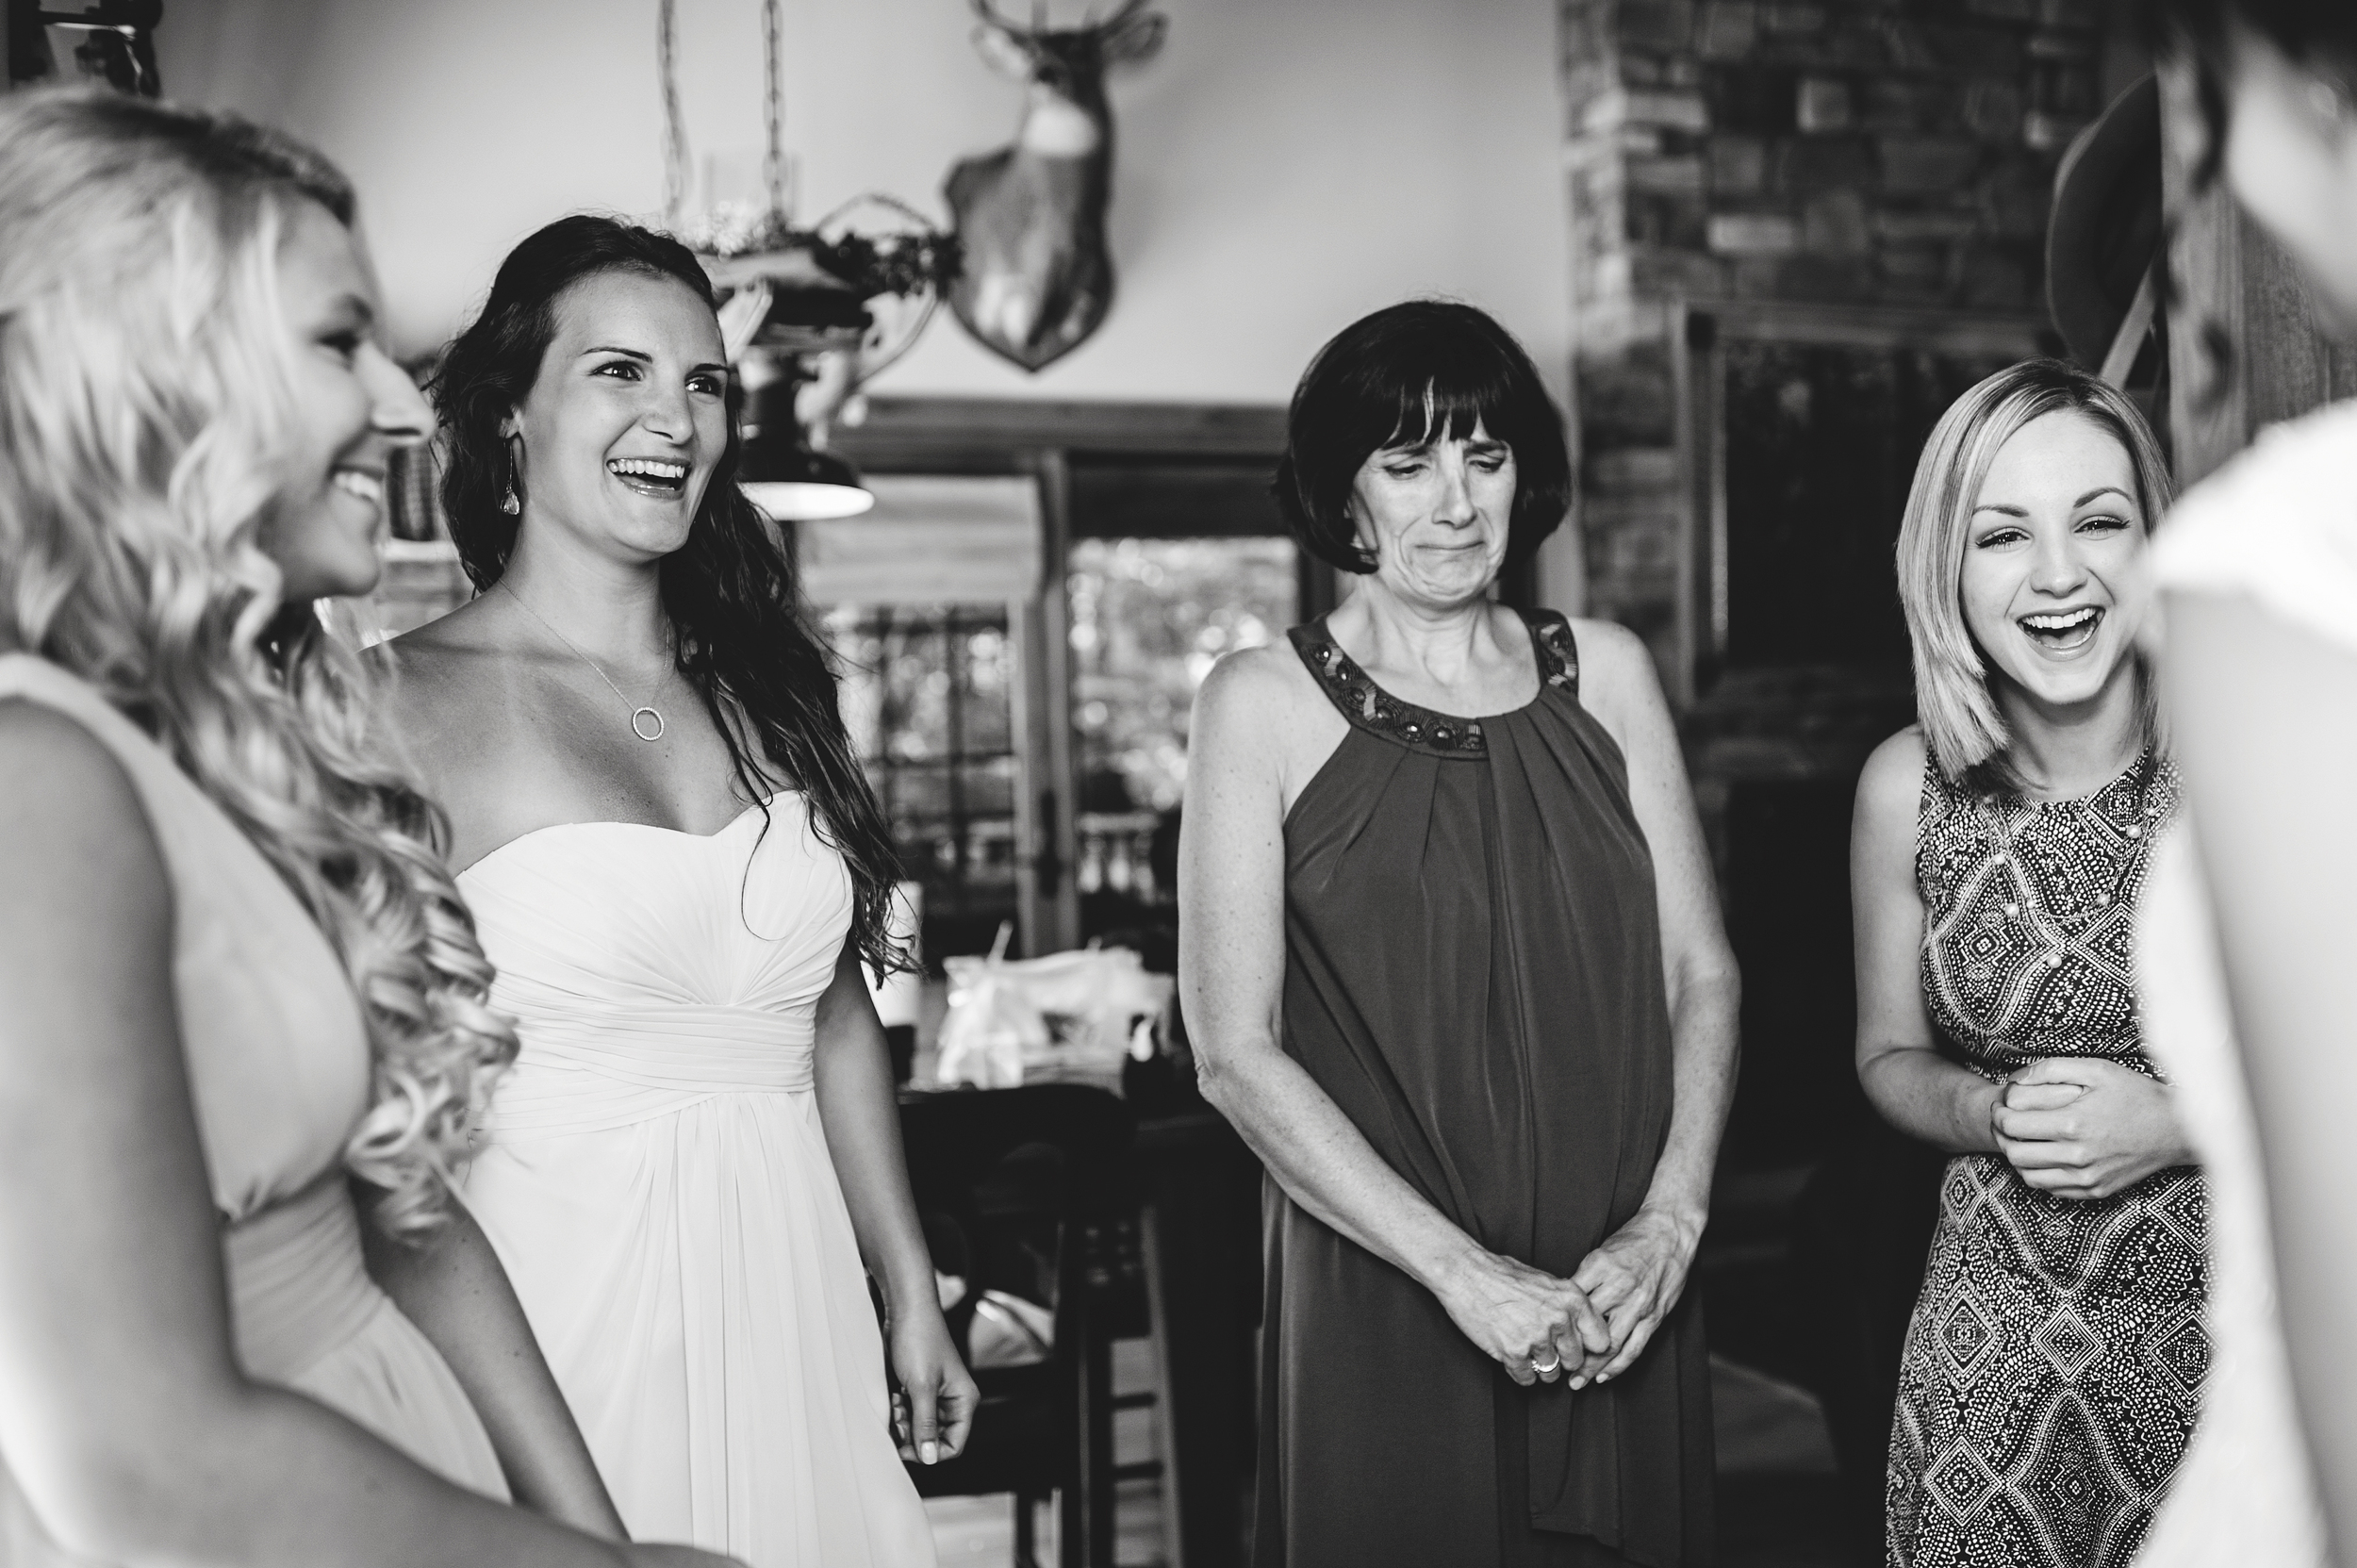 mother in-law expression with bride dress reveal